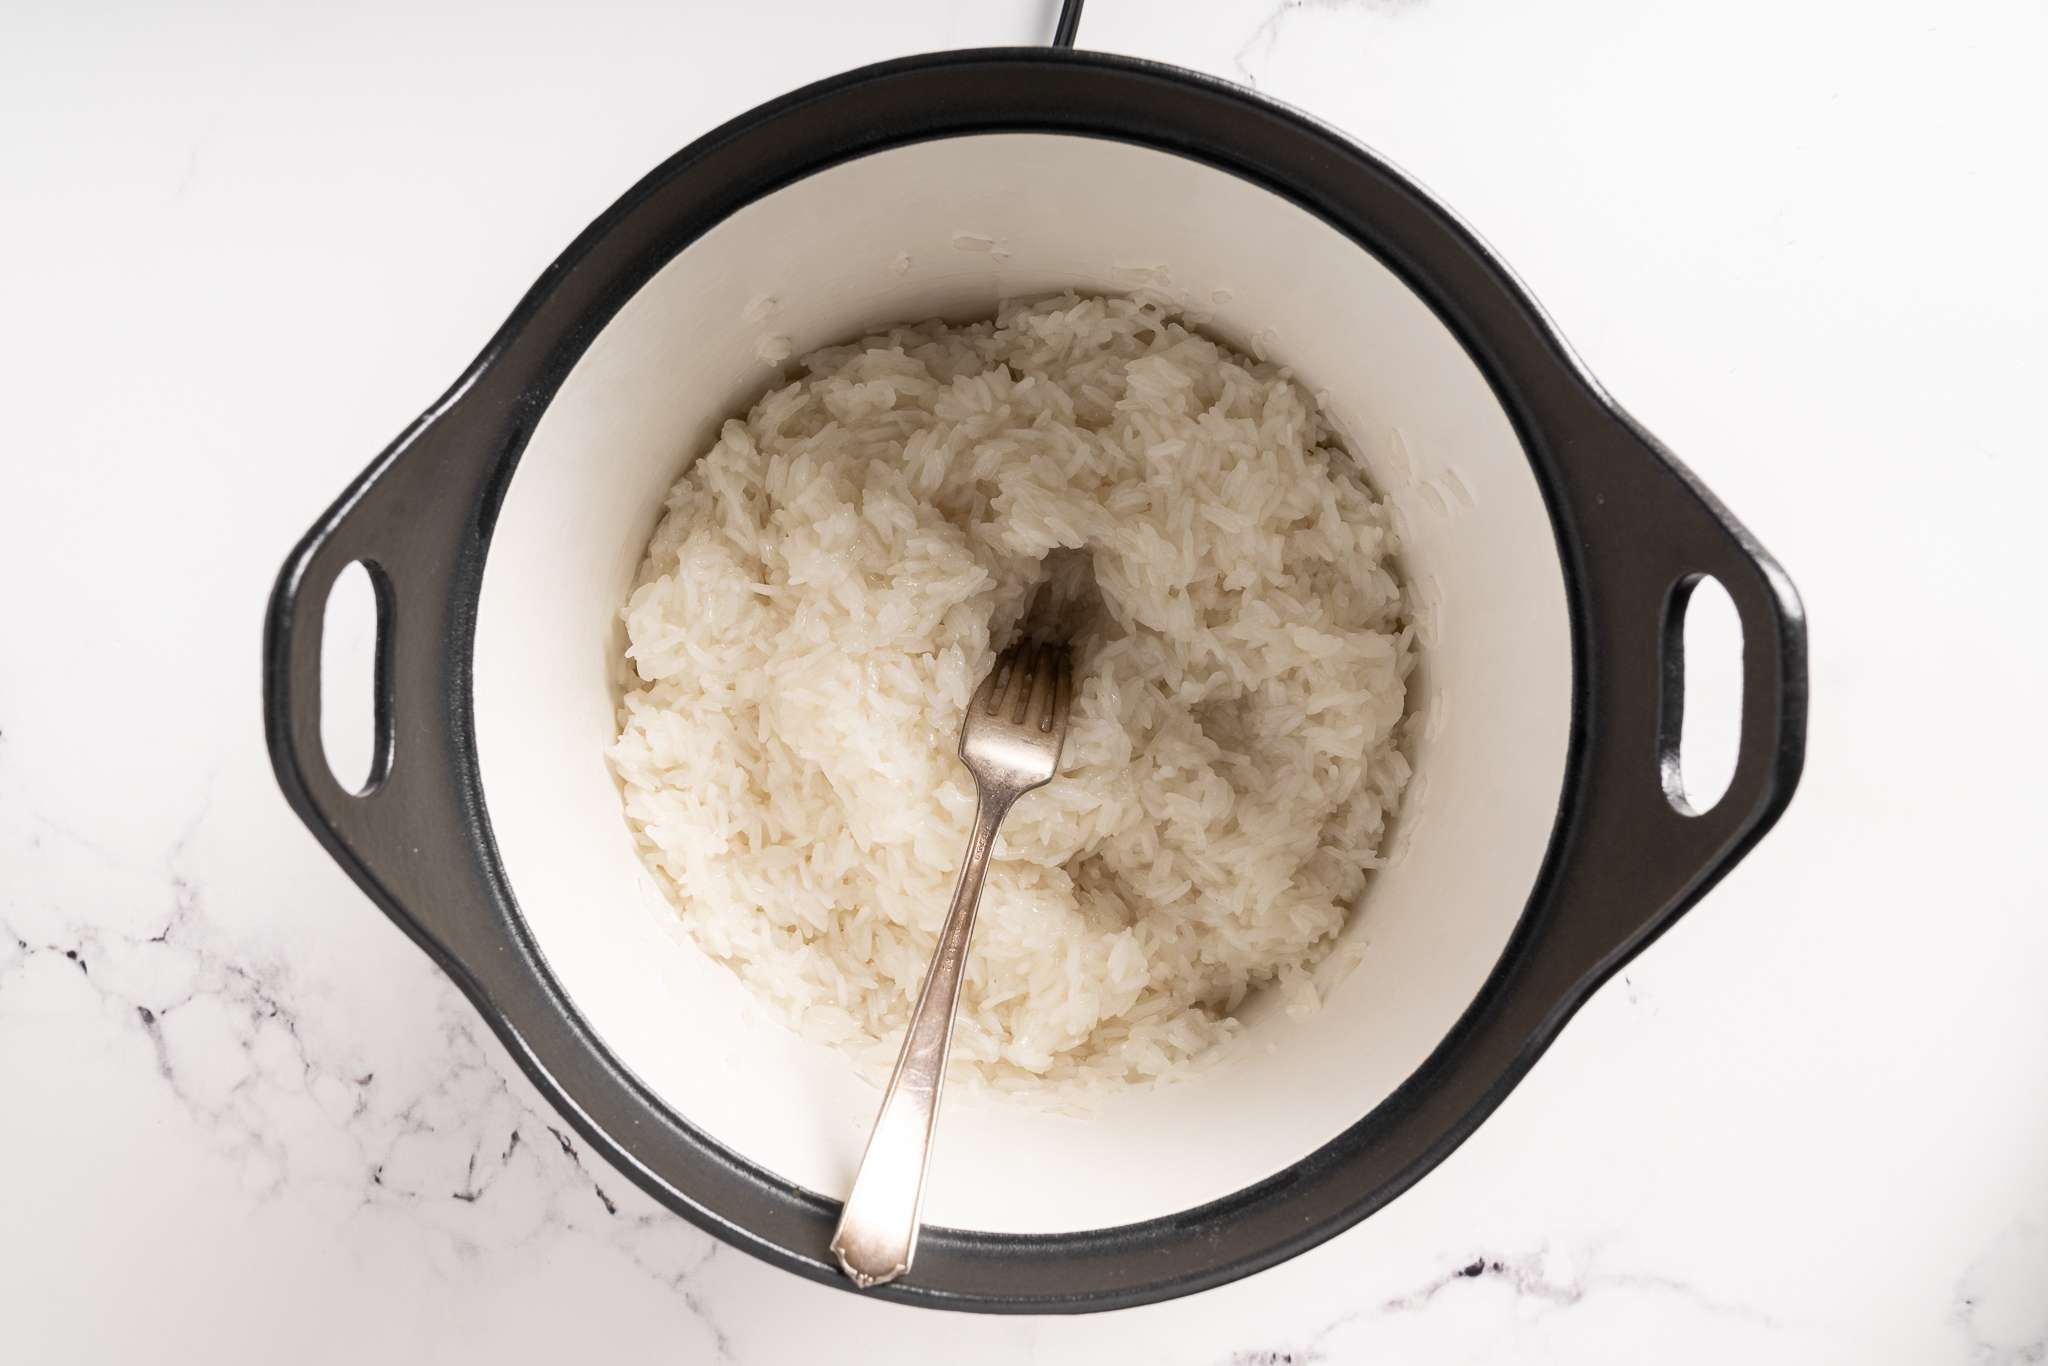 check the rice in the rice cooker